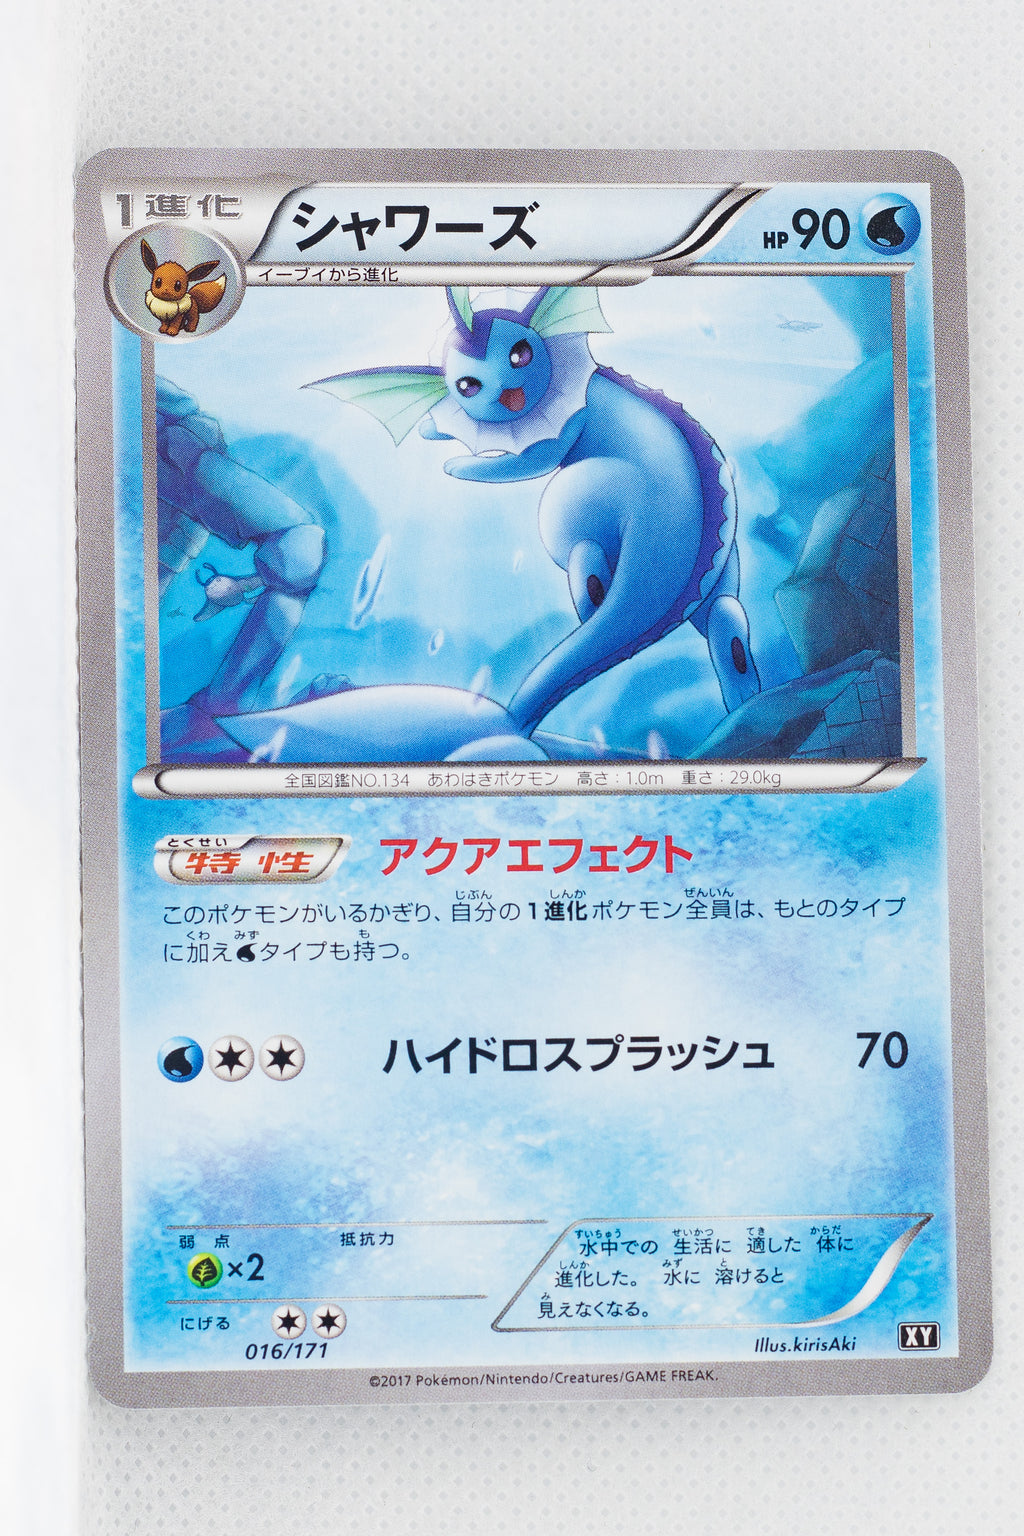 The Best of XY 016/171 Vaporeon